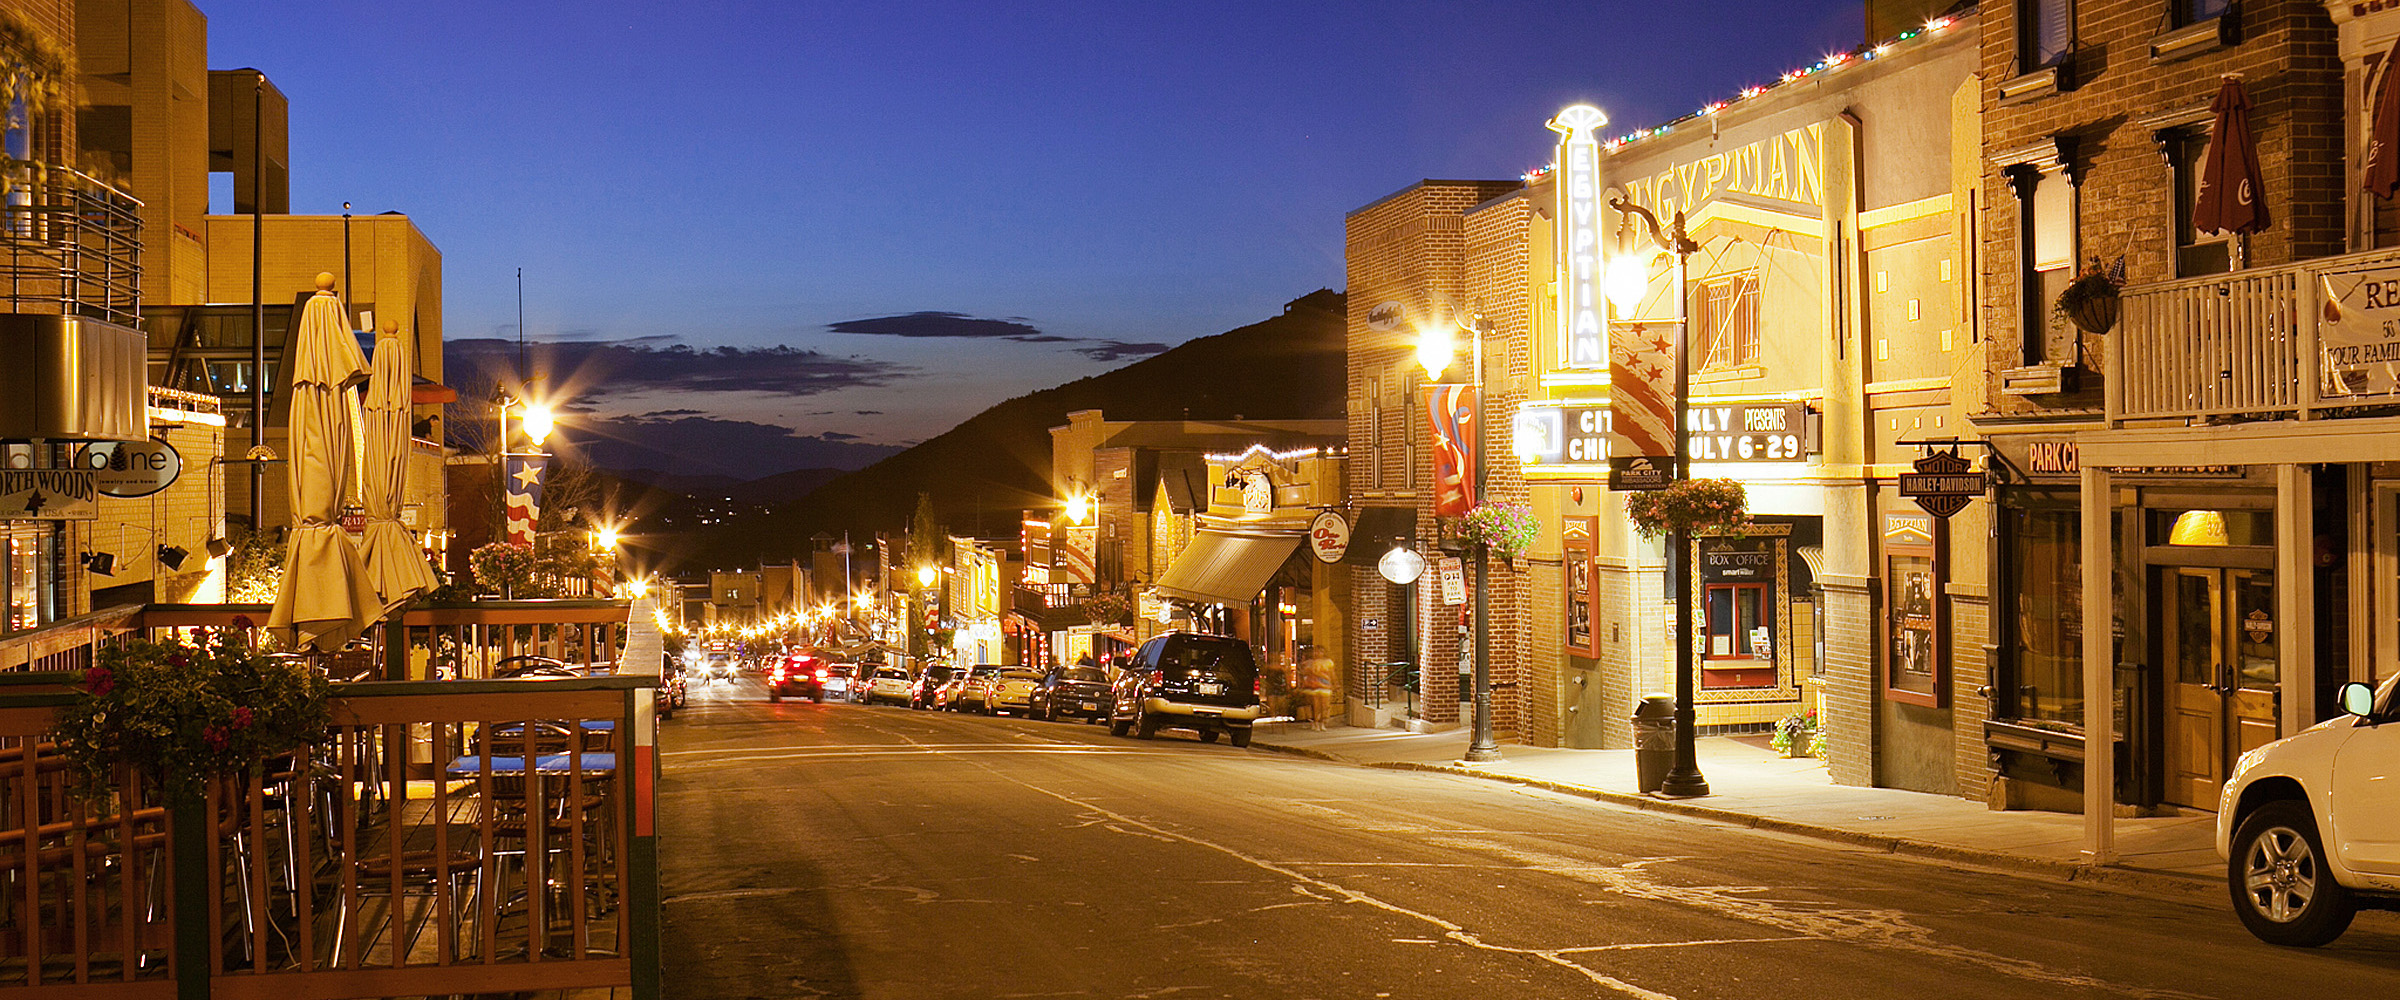 Opulent Vacations Launches New Websites Geared to Luxury Vacation Rentals in Park City, UT